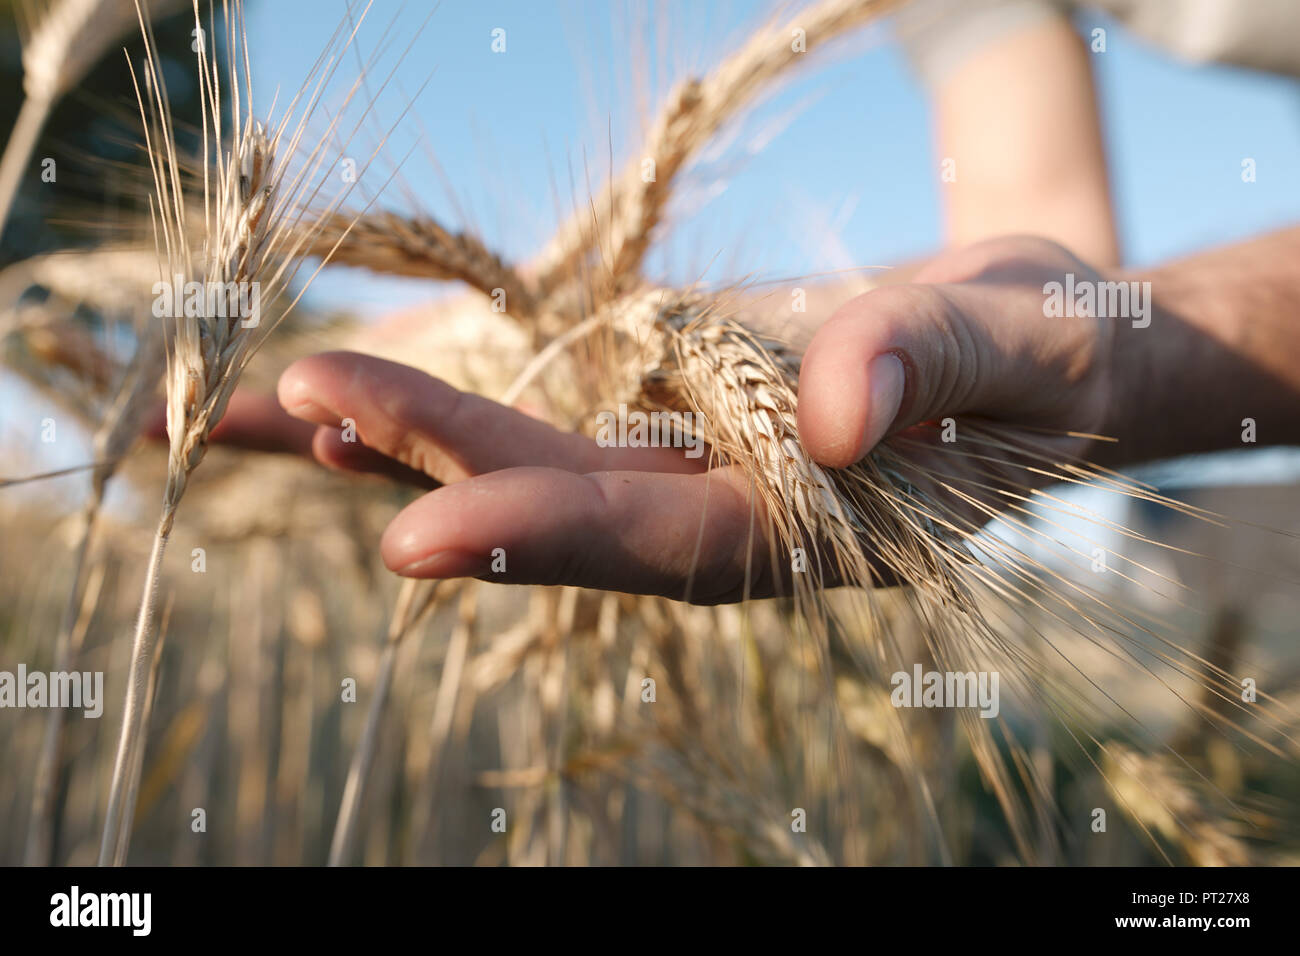 Man's hands holding wheat ears - Stock Image